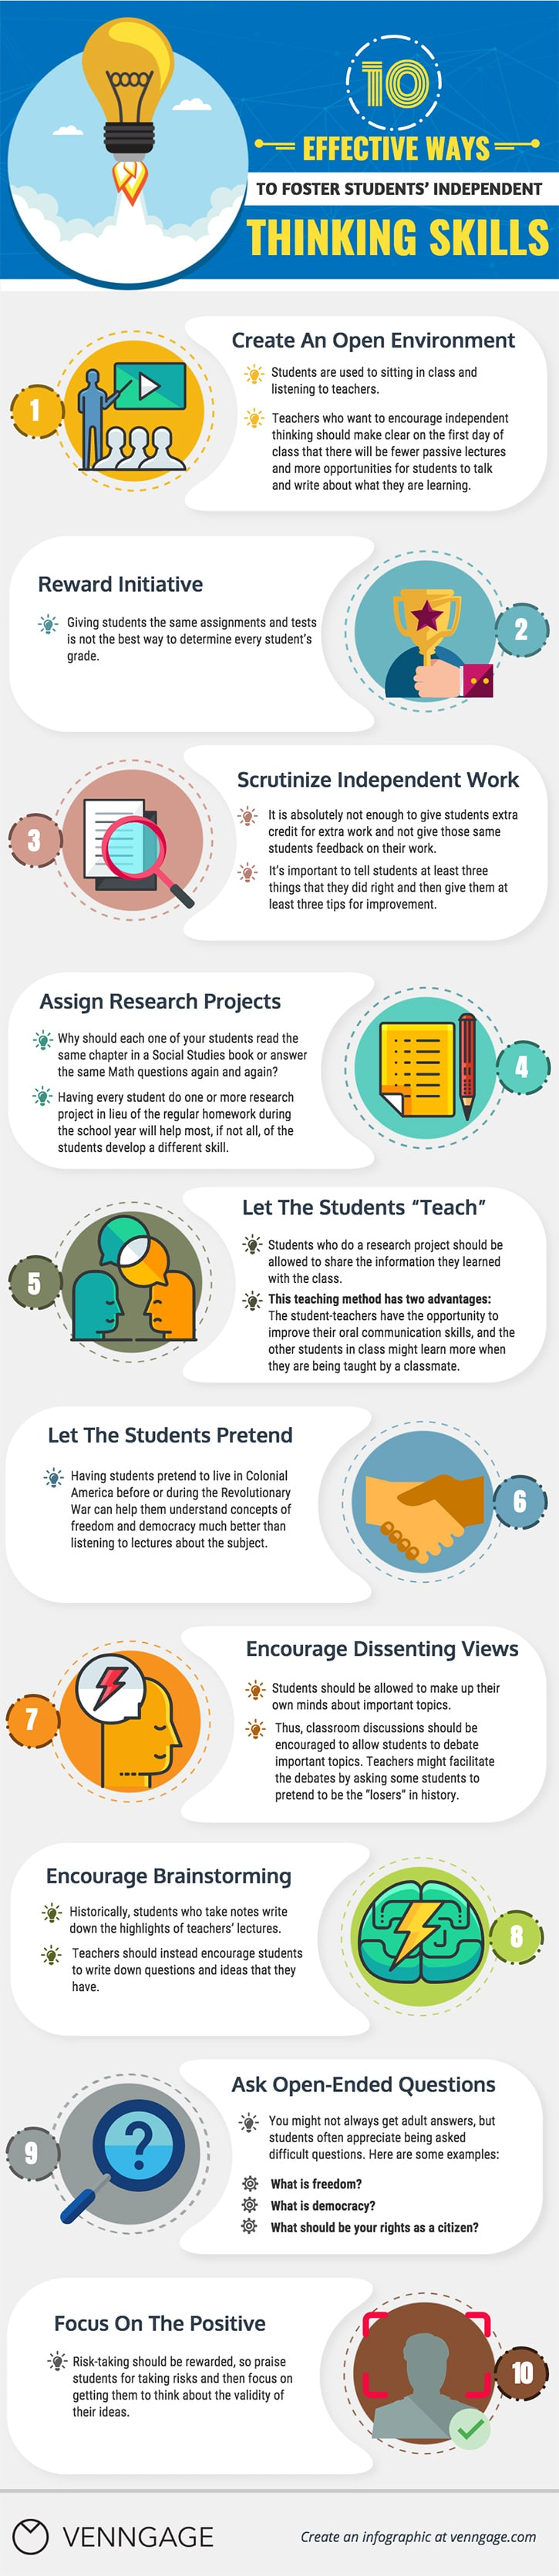 10 Effective Ways to Foster Students' Independent Thinking